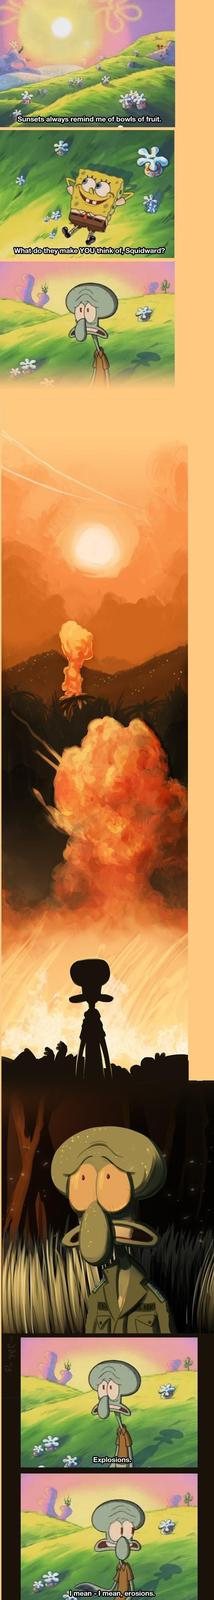 Squidward's Seen Things